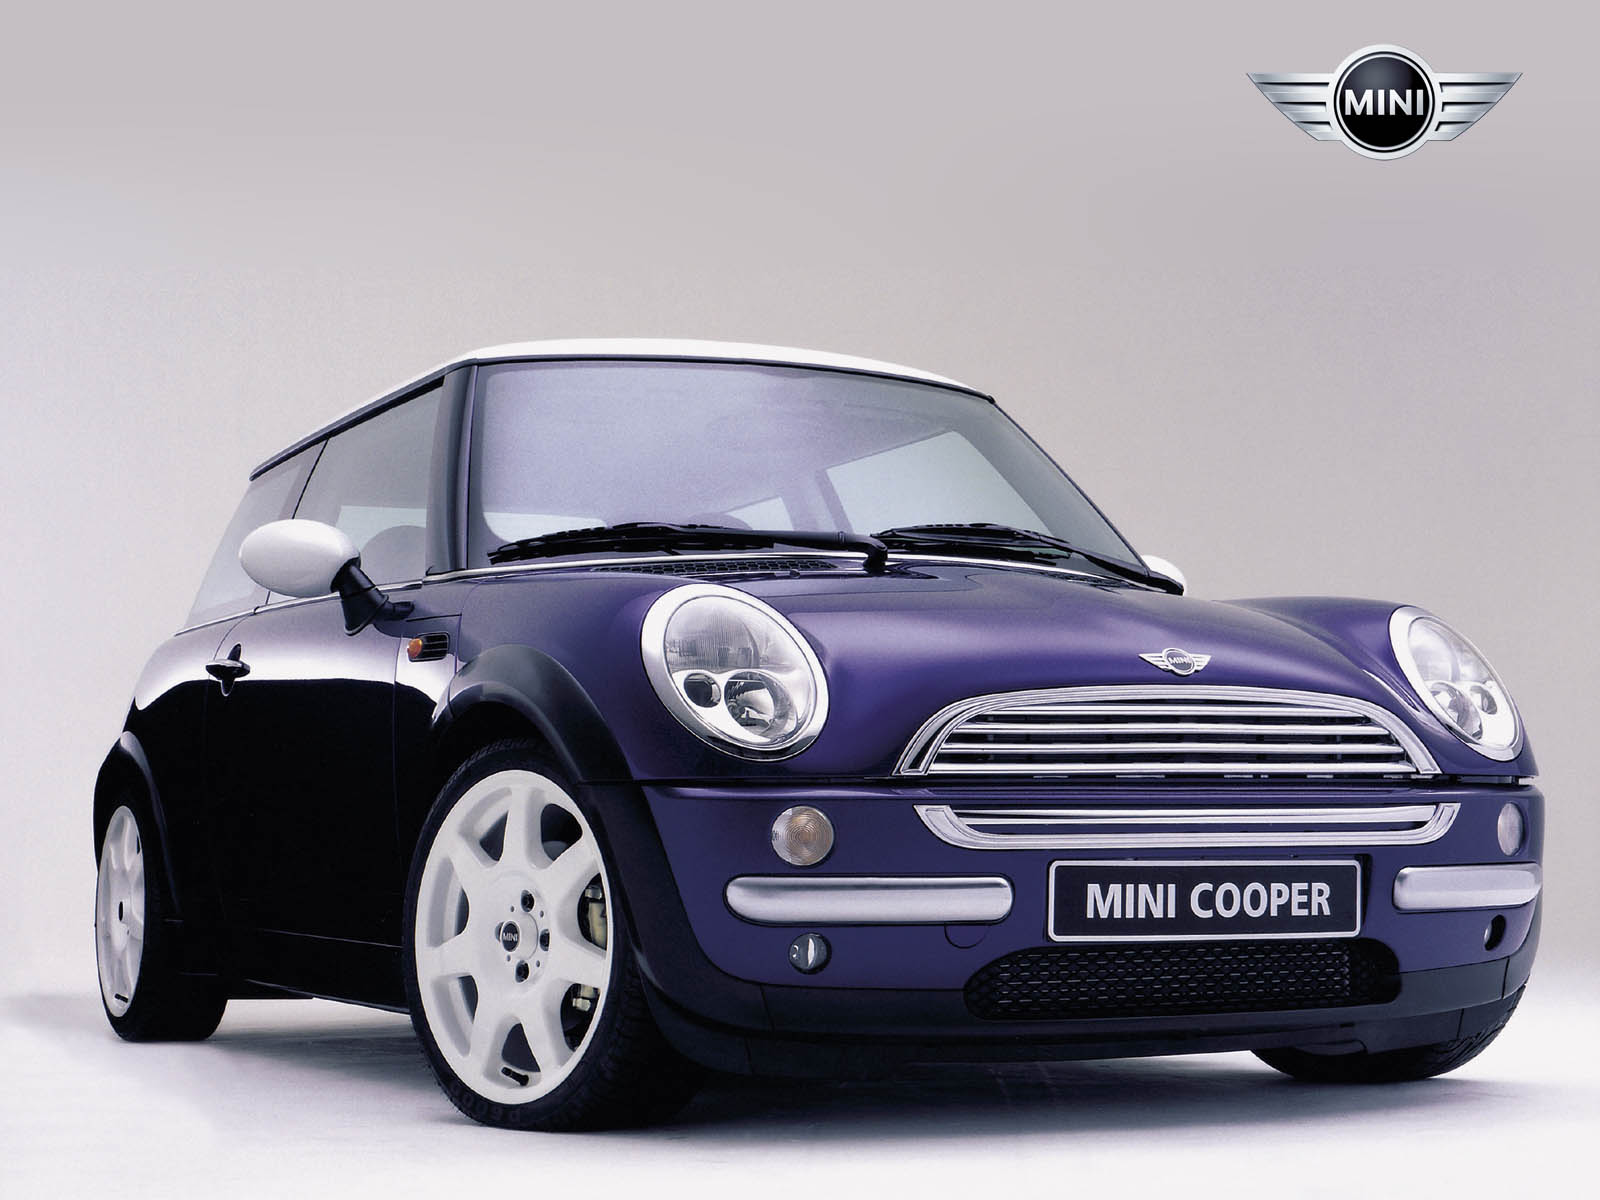 automobile zone: bmw mini cooper launched in india price, features